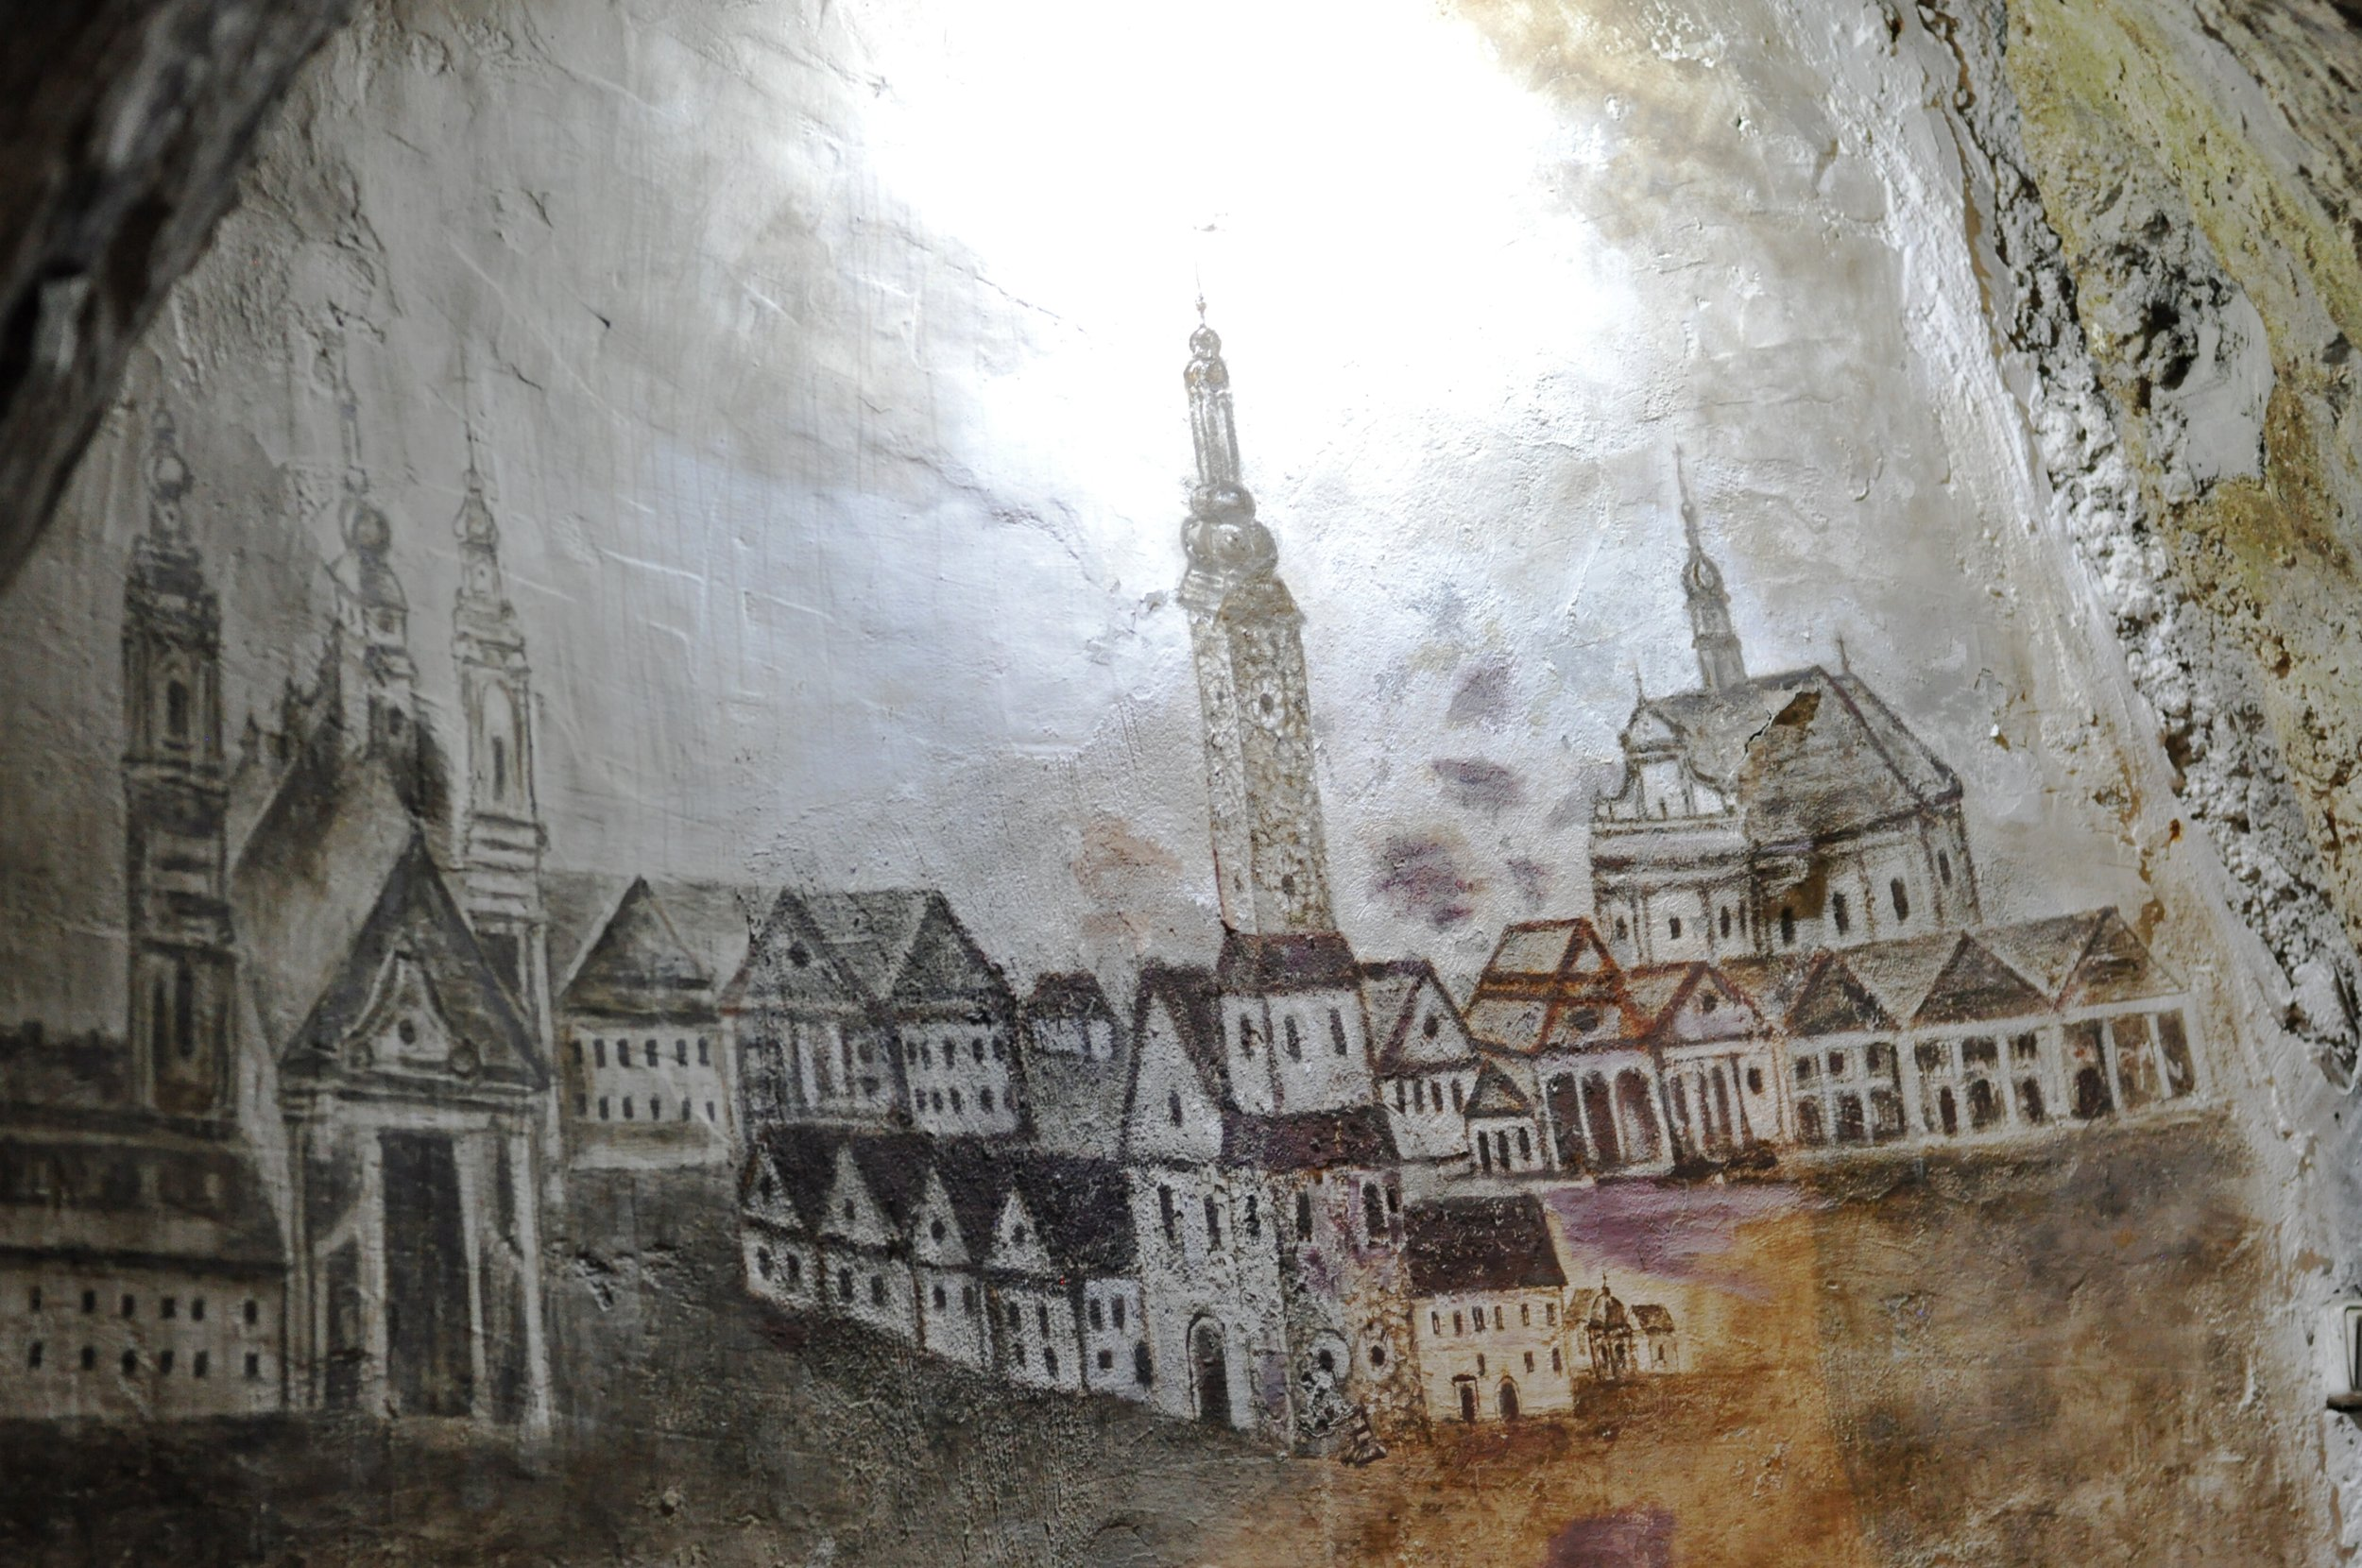 Mural inside the Chalk Mines in Chelm, Poland